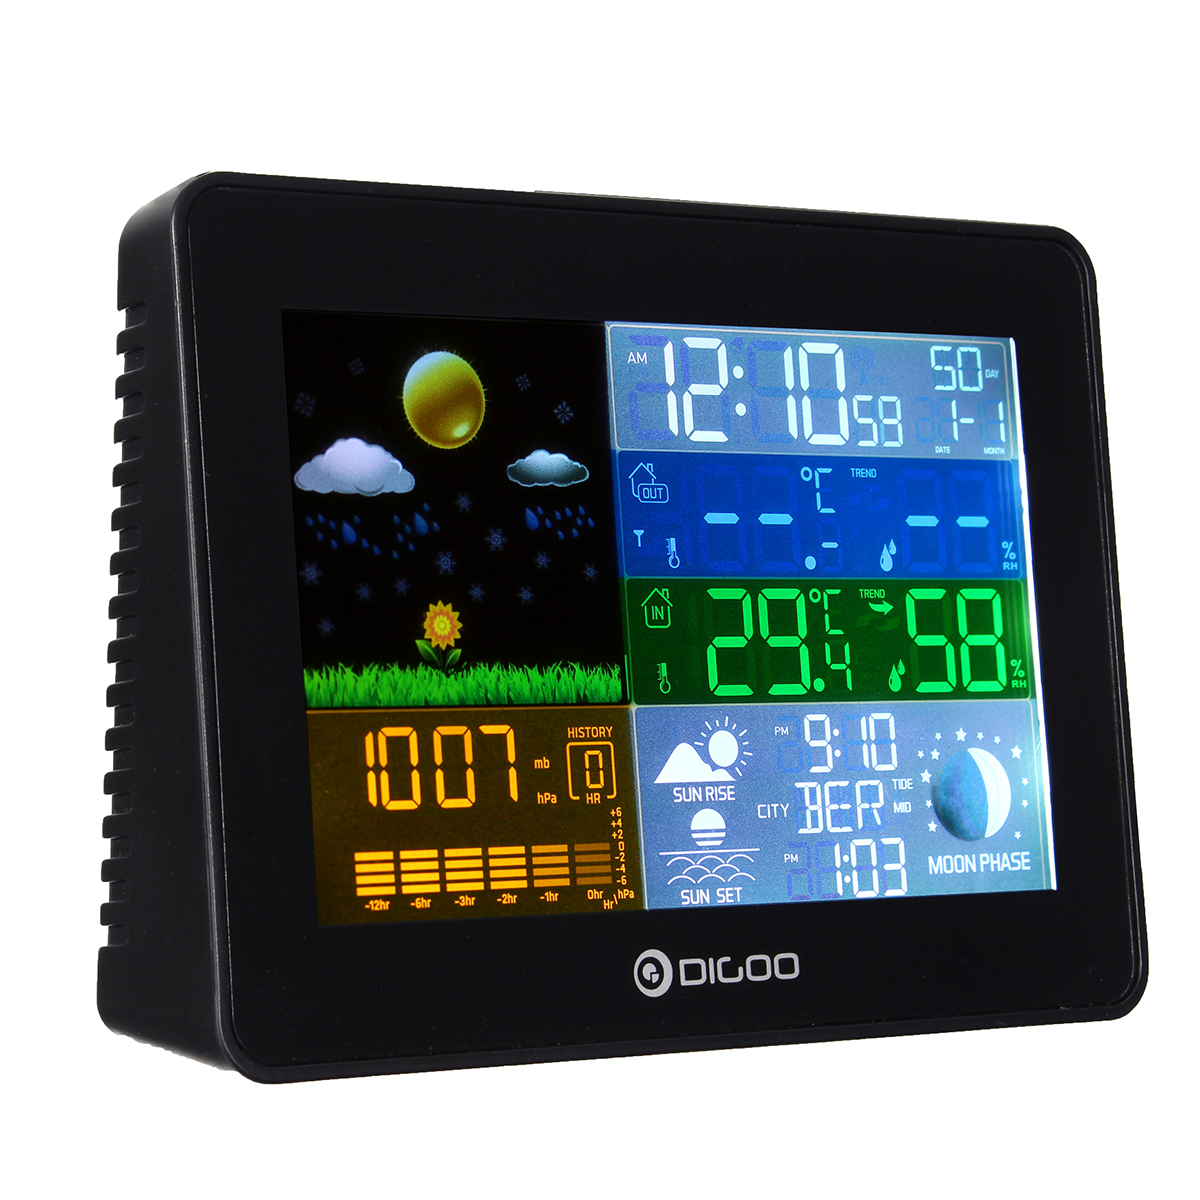 Wireless Weather Station,Digoo LED Screen Weather Forecast Station with Back-light Time Date Display Humidity Temperature Meter Monitor Thermometer Hygrometer Clock